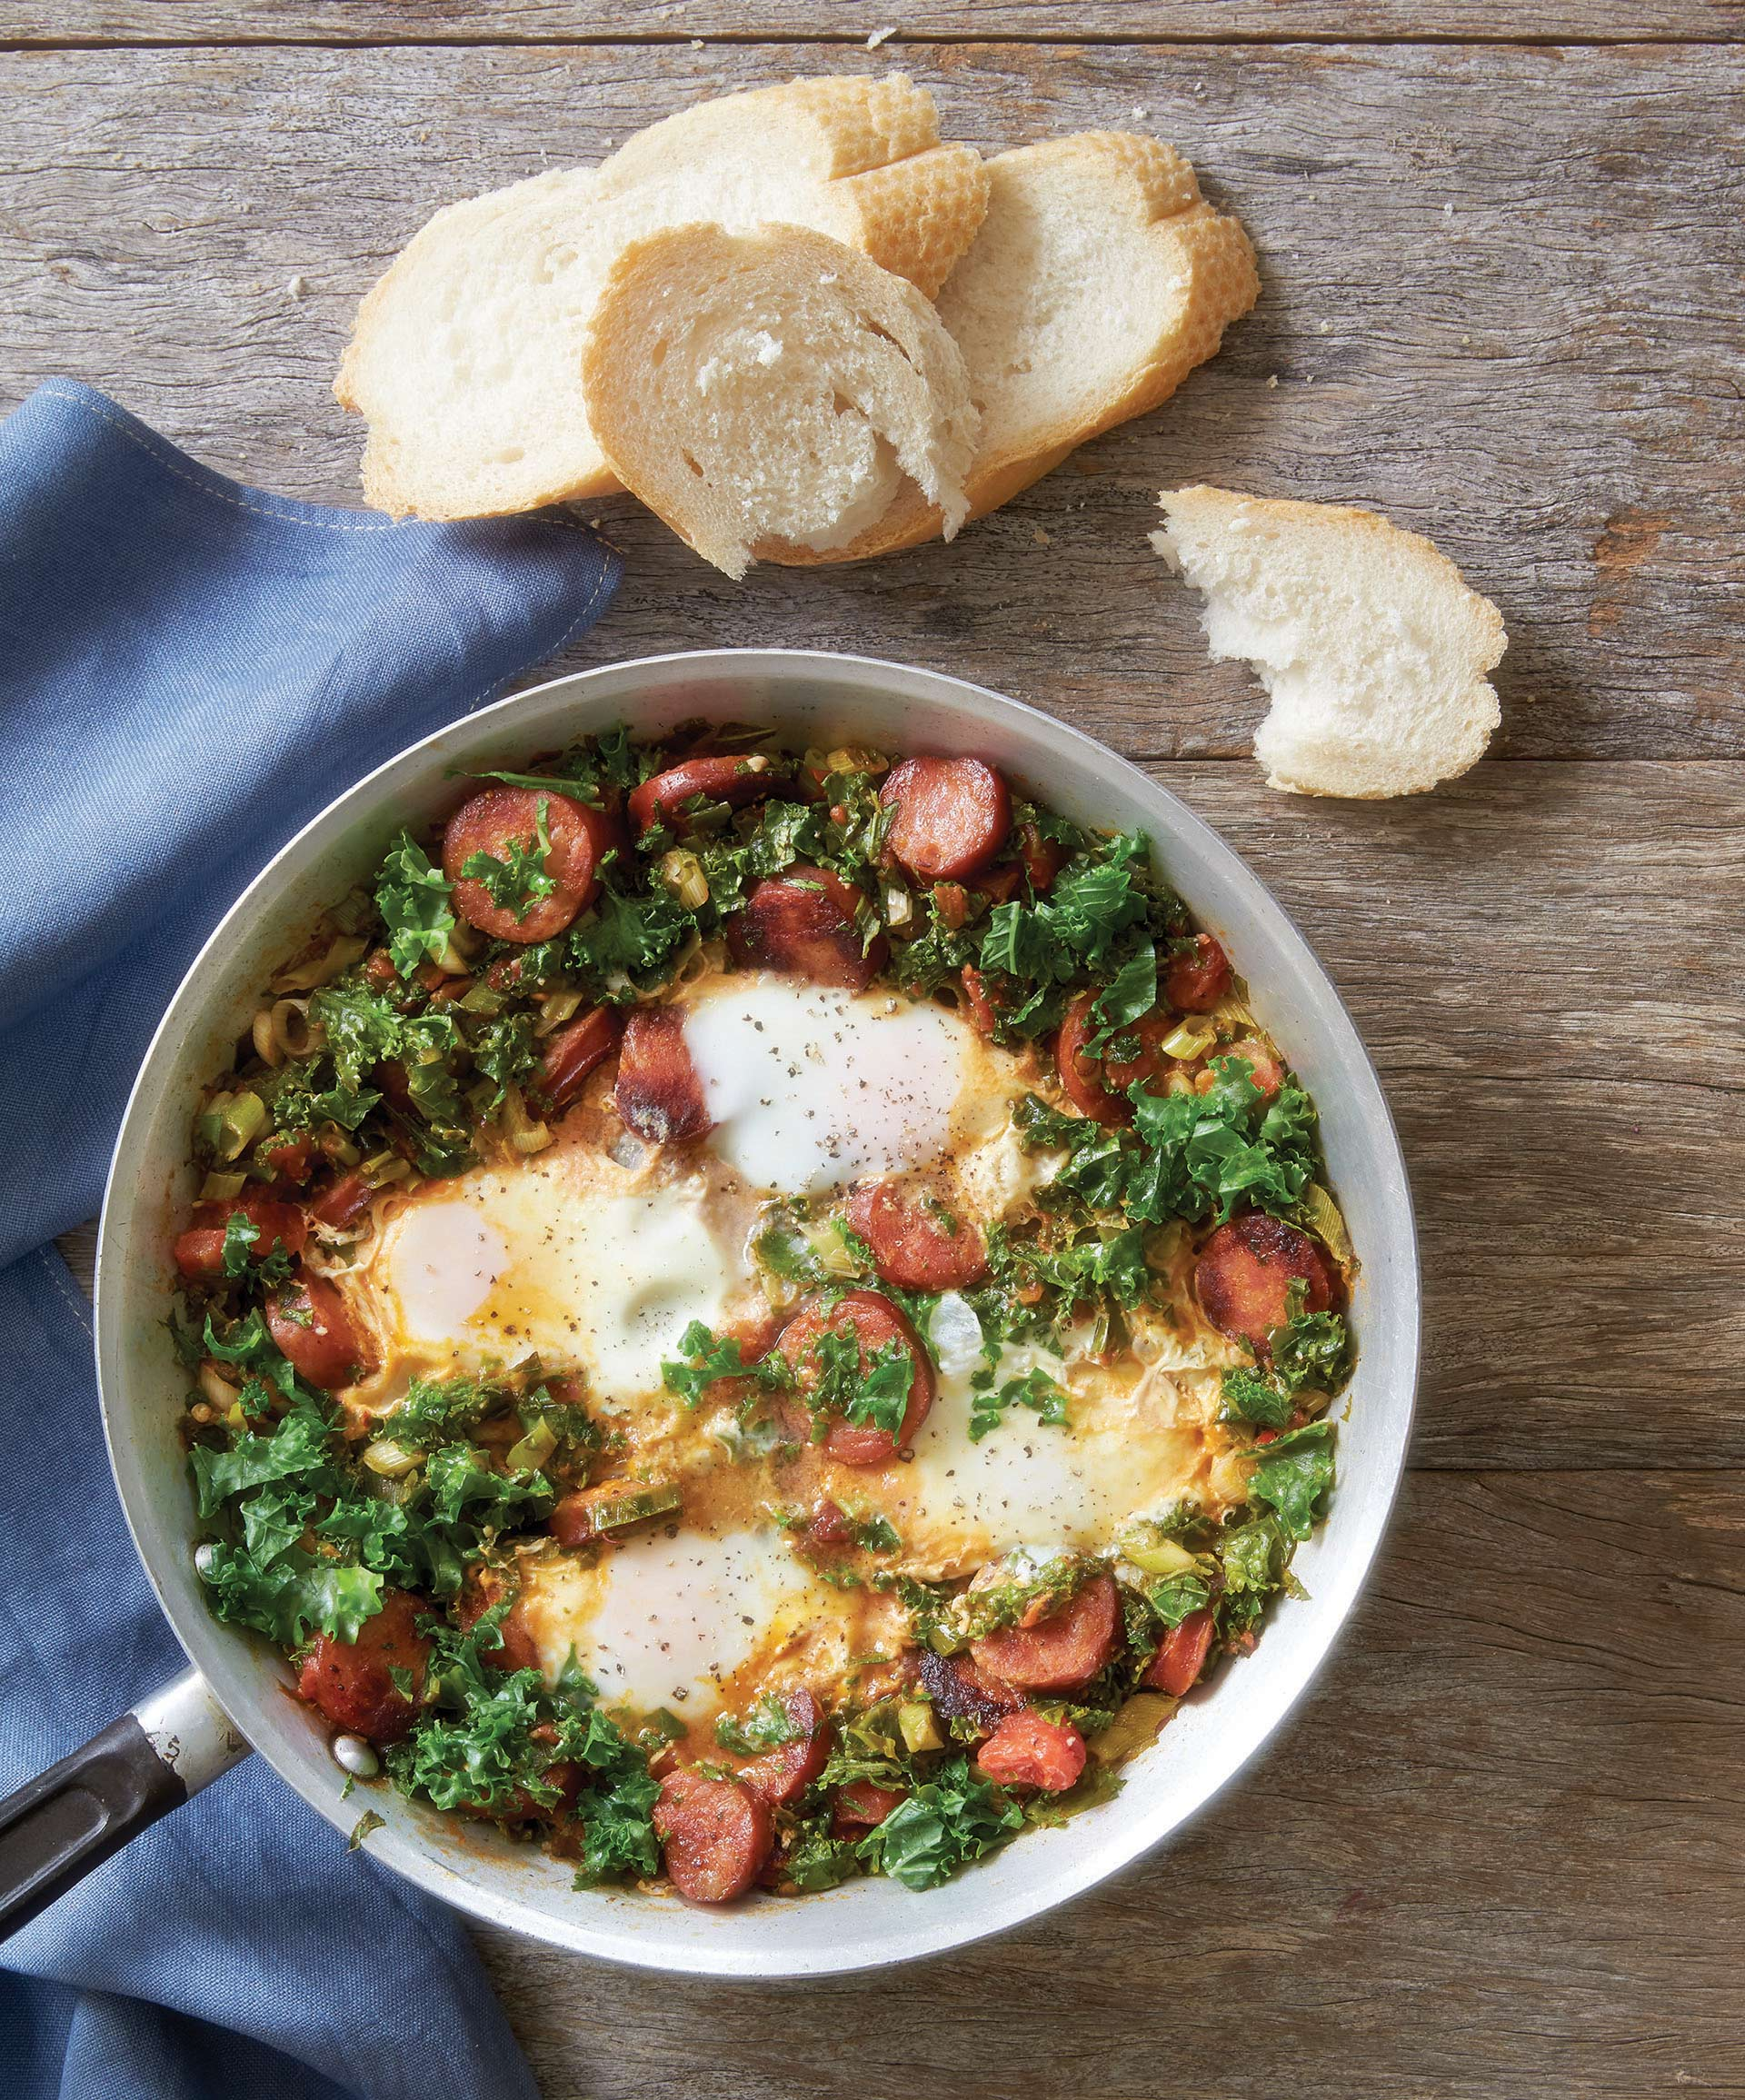 kale-with-chorizo-sausage-and-eggs